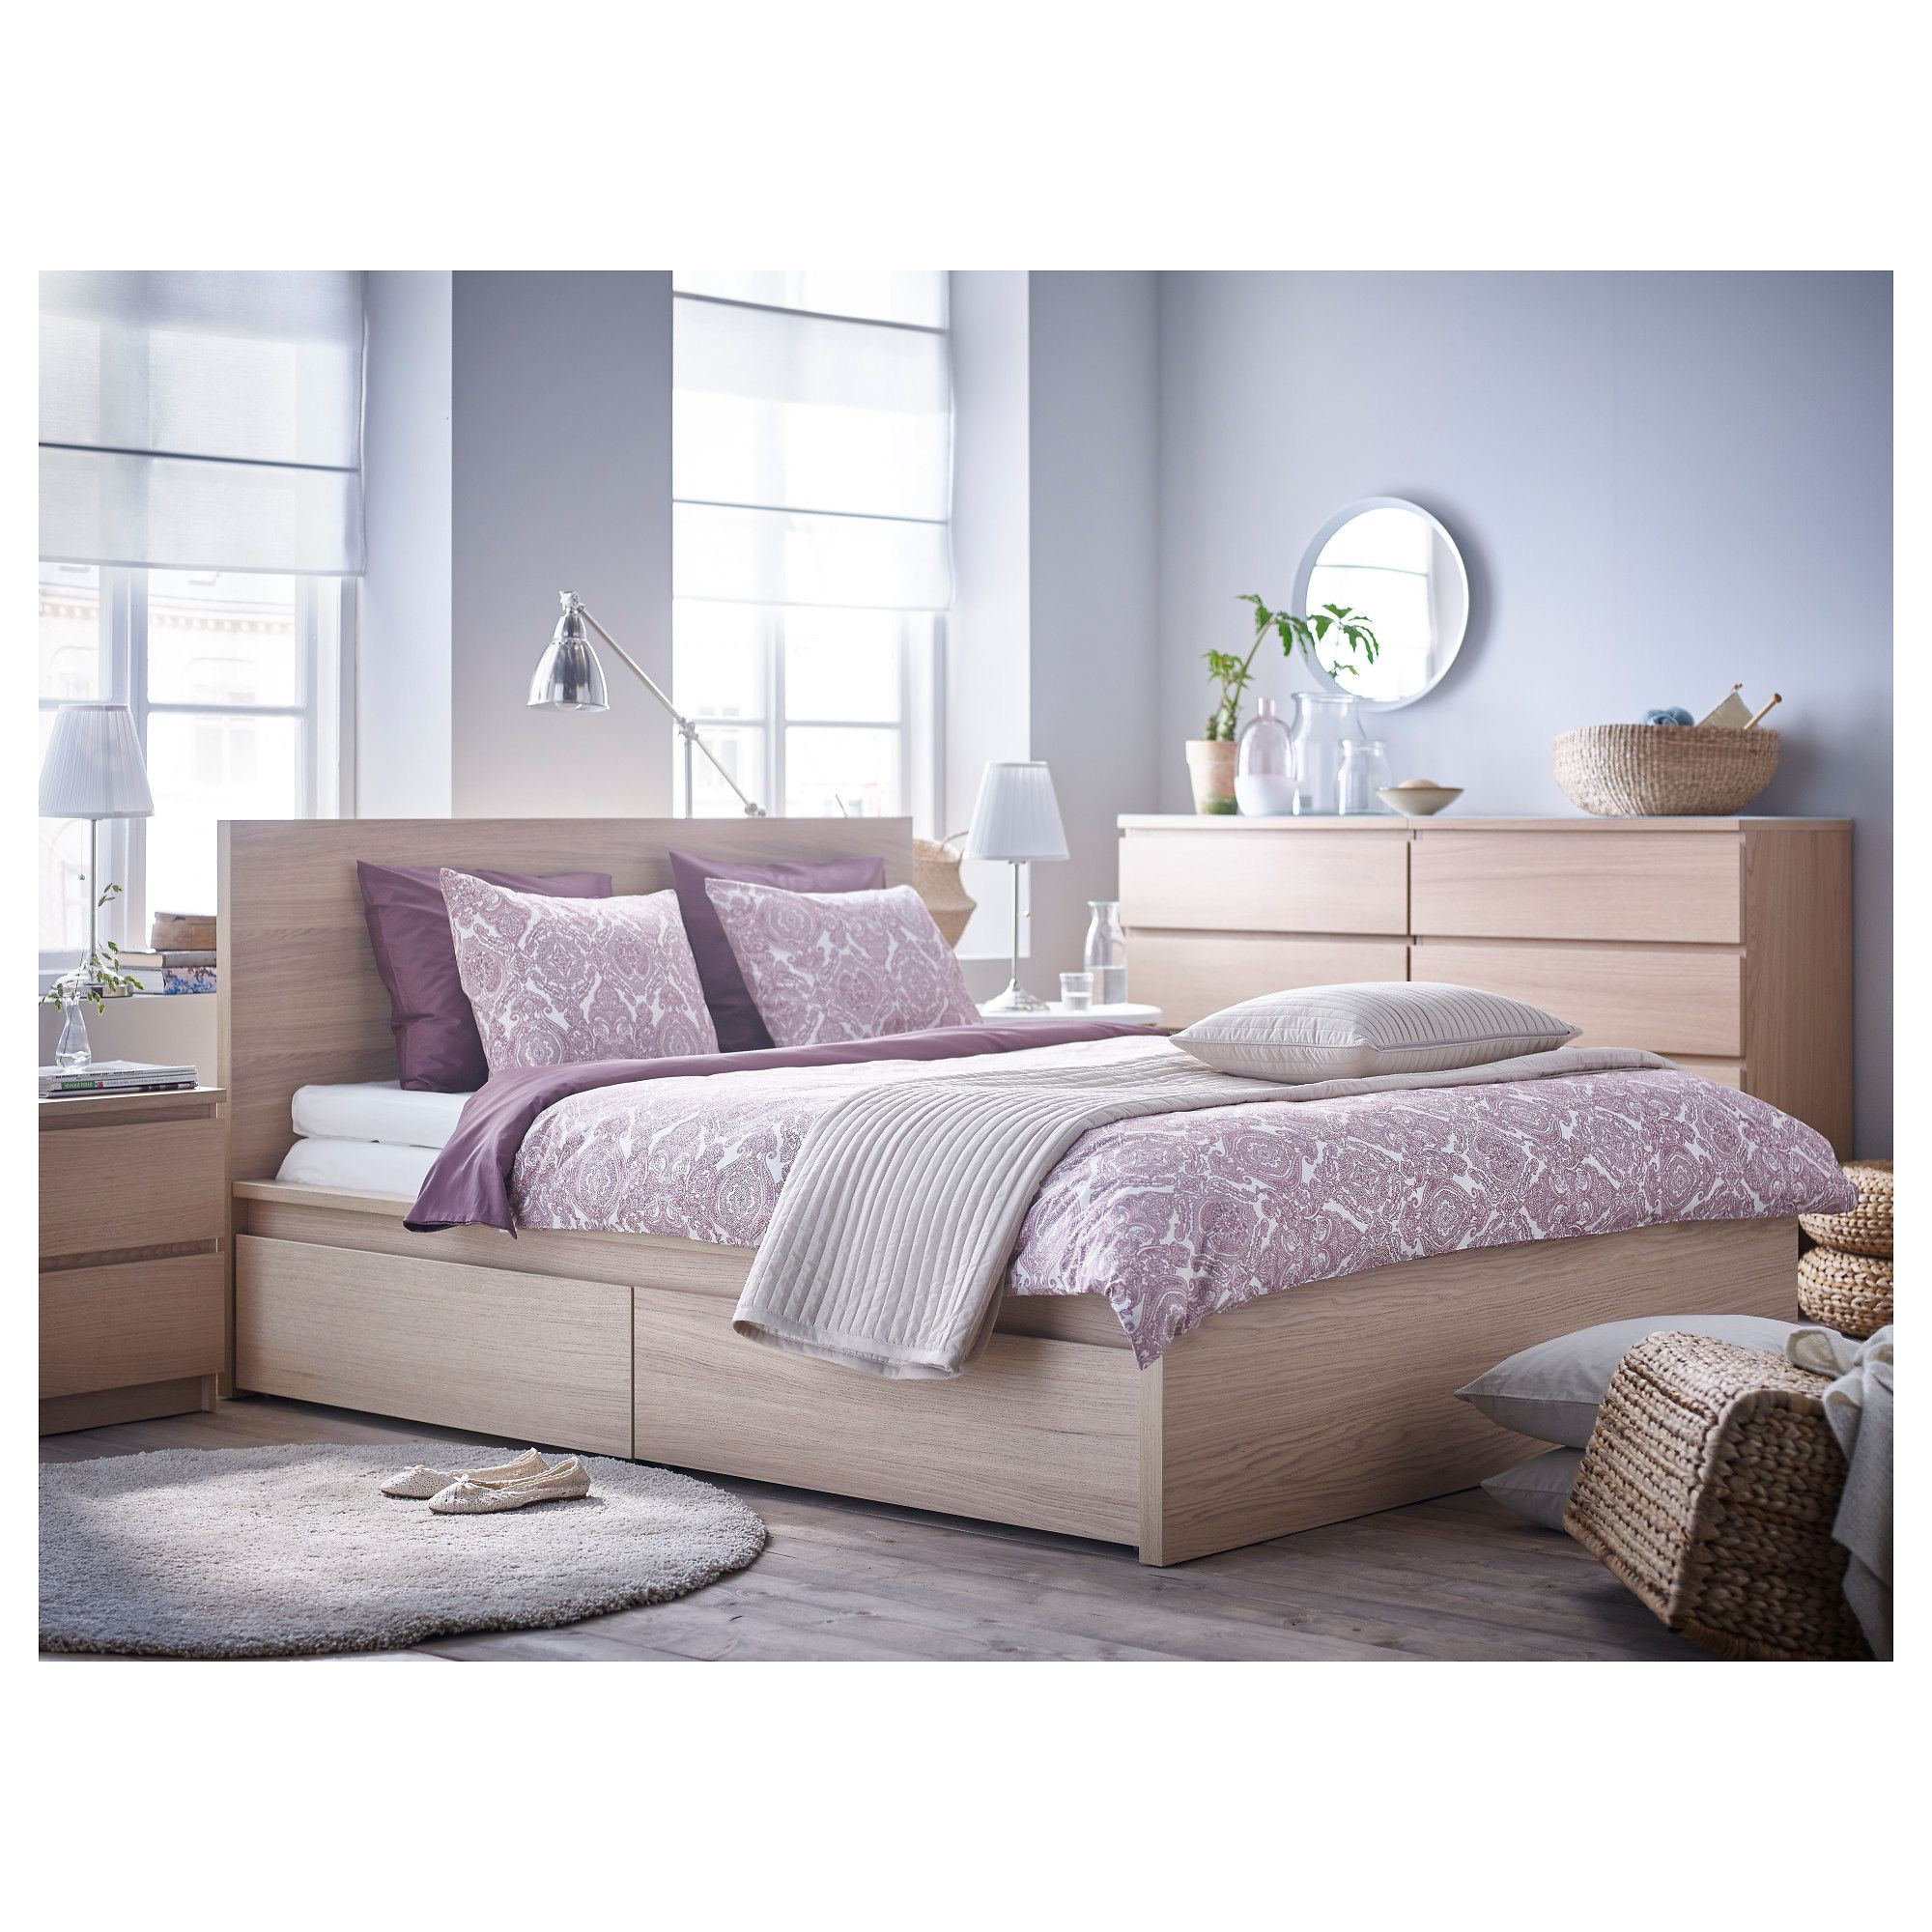 ikea malm high bed frame 2 storage boxes queen luroy the 2 large drawers on casters give you an extra storage space under the bed